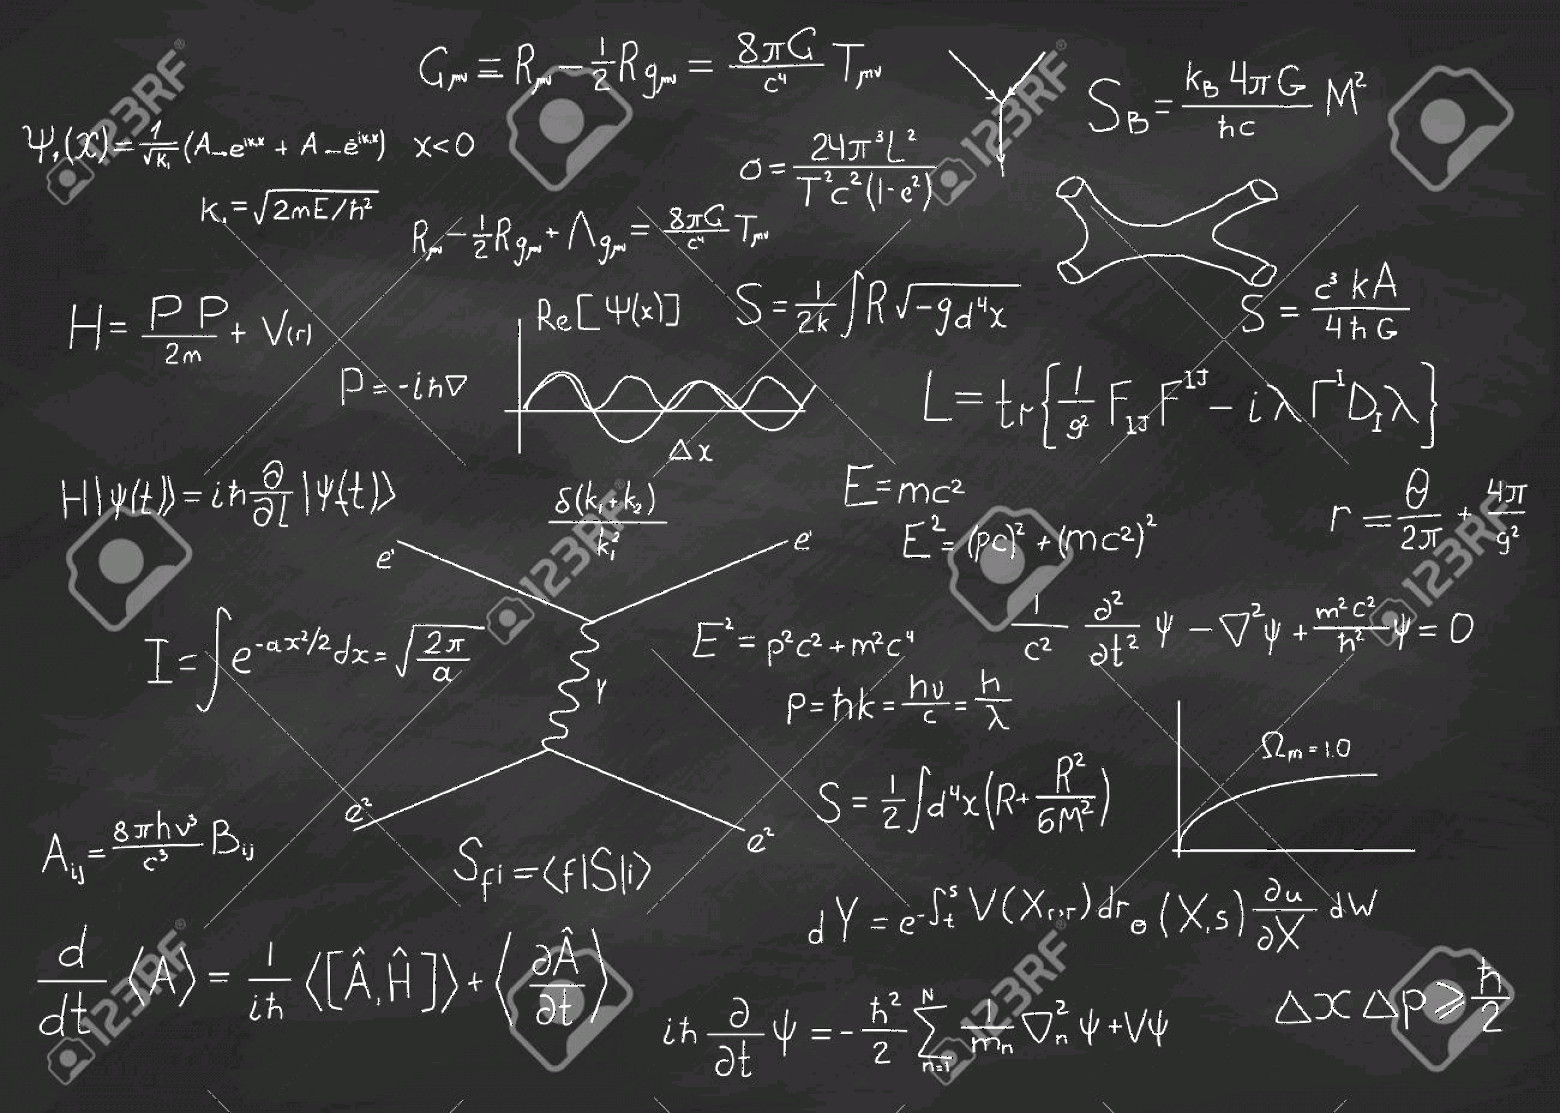 Vector Equation Physical Science: Photostock Vector Science Blackboard With Math Real Physical Equations Of Einstein Relativity Theory String Theory And